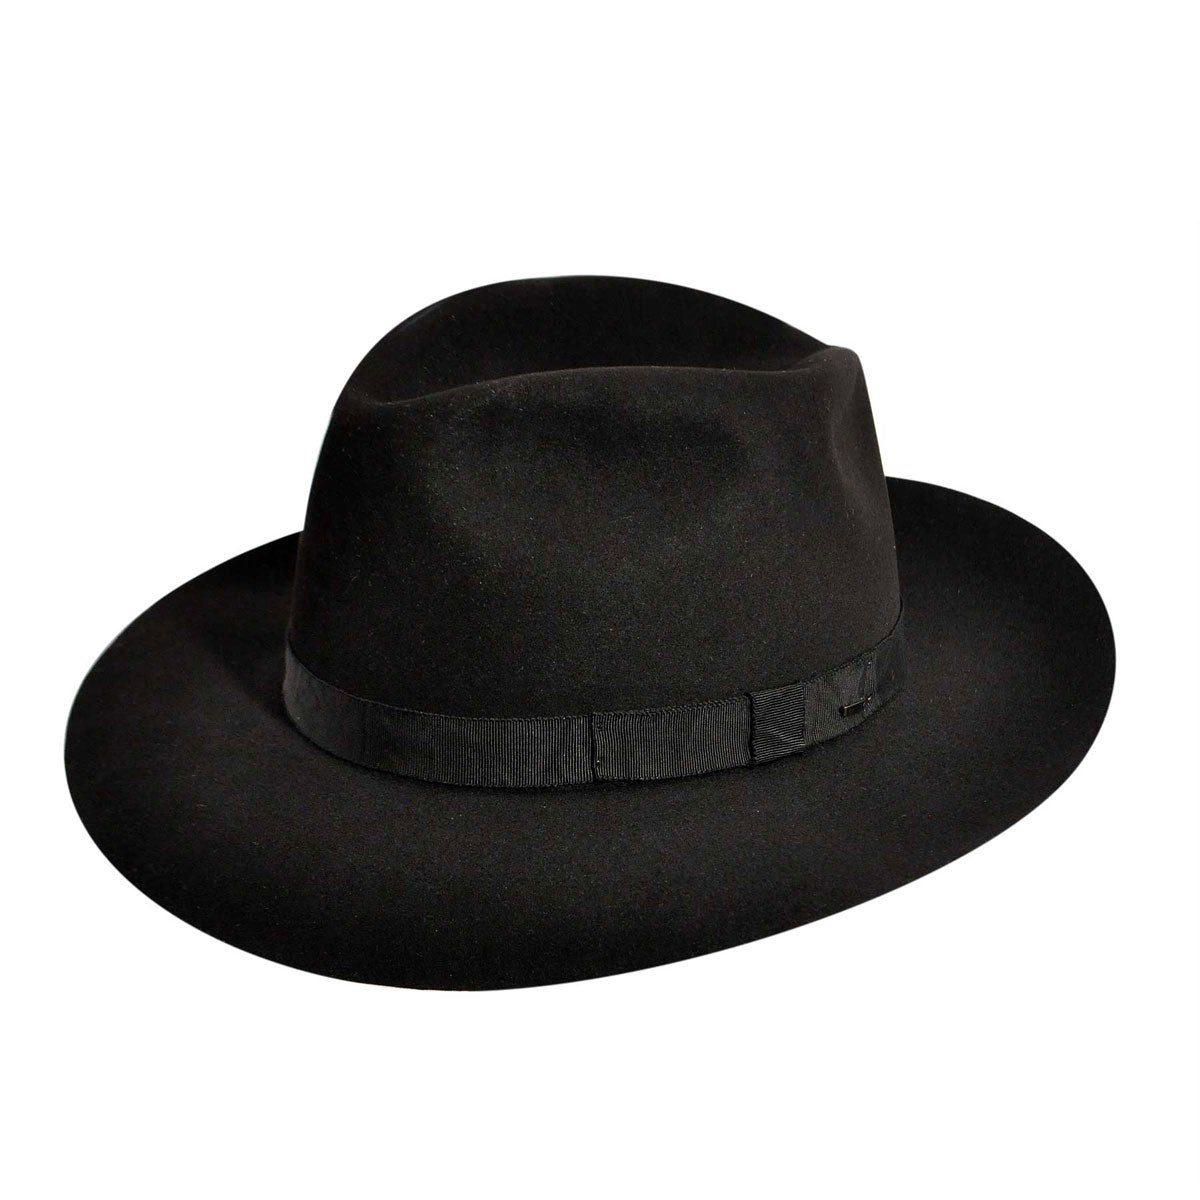 New Edwardian Style Men's Hats 1900-1920 Noble Fedora $350.00 AT vintagedancer.com